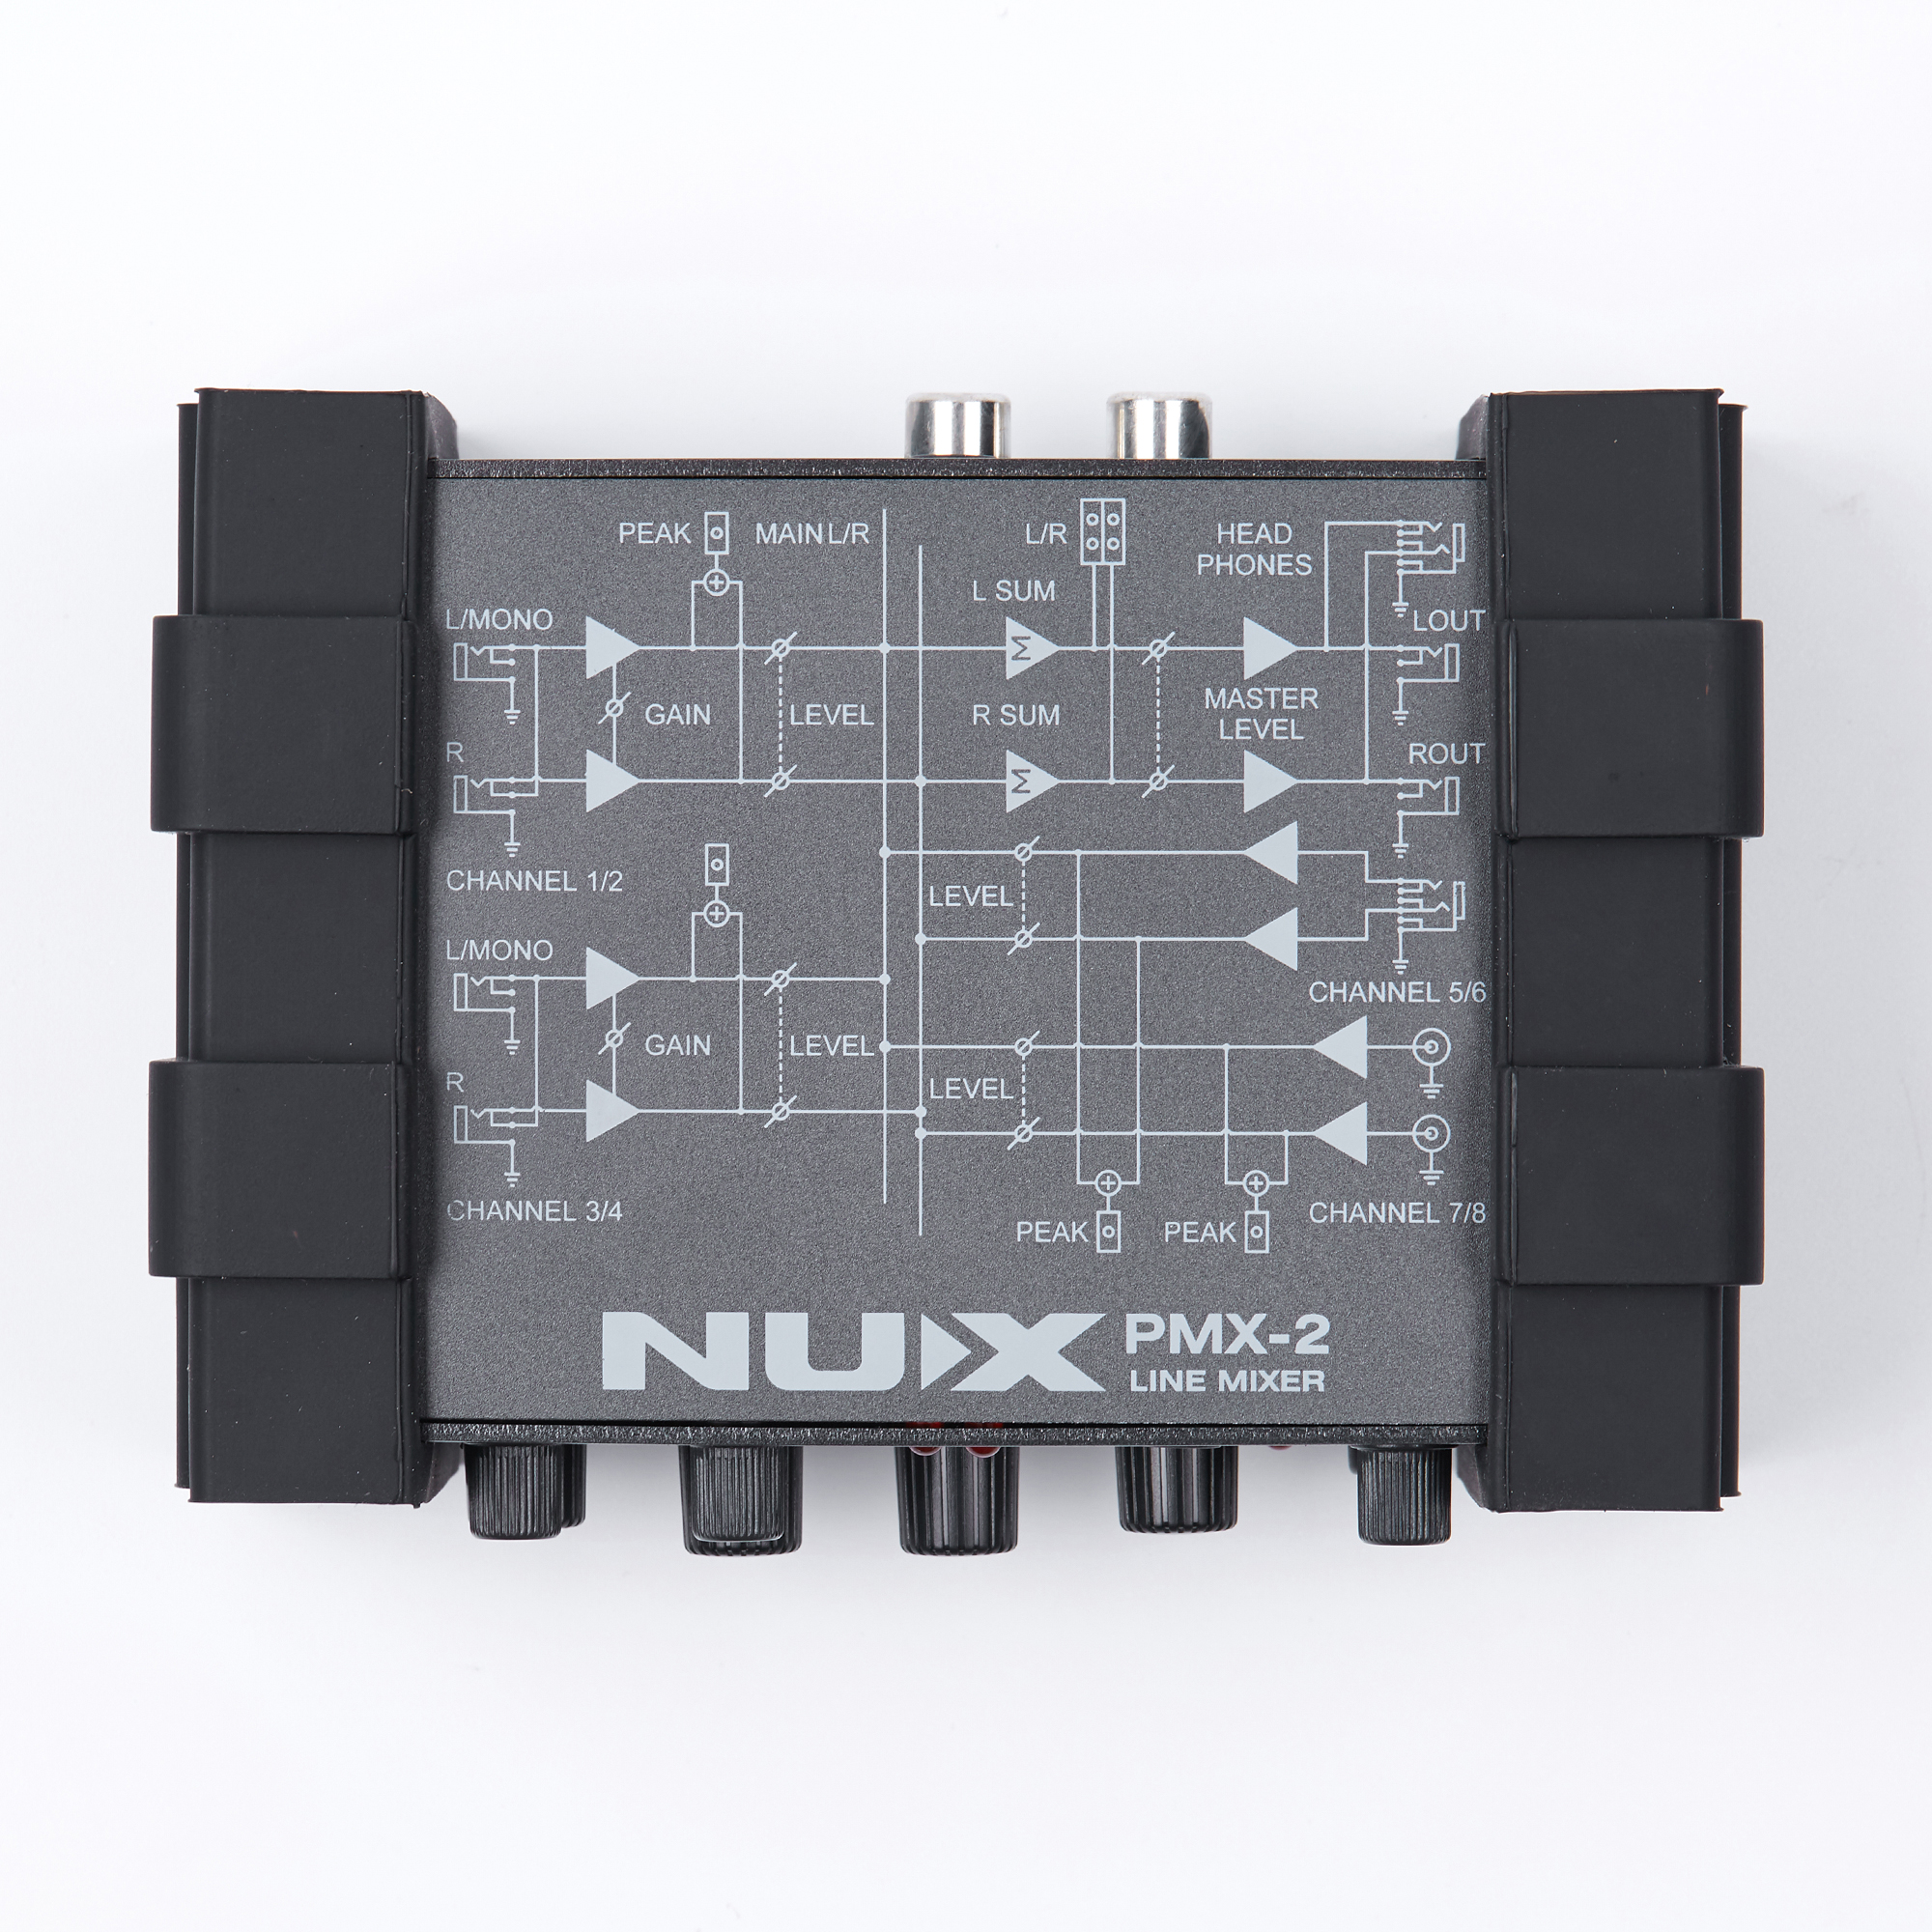 Gain Control 8 Inputs and 2 Outputs NUX PMX-2 Multi-Channel Mini Mixer 30 Musical Instruments Accessories for Guitar Bass Player early starters can you